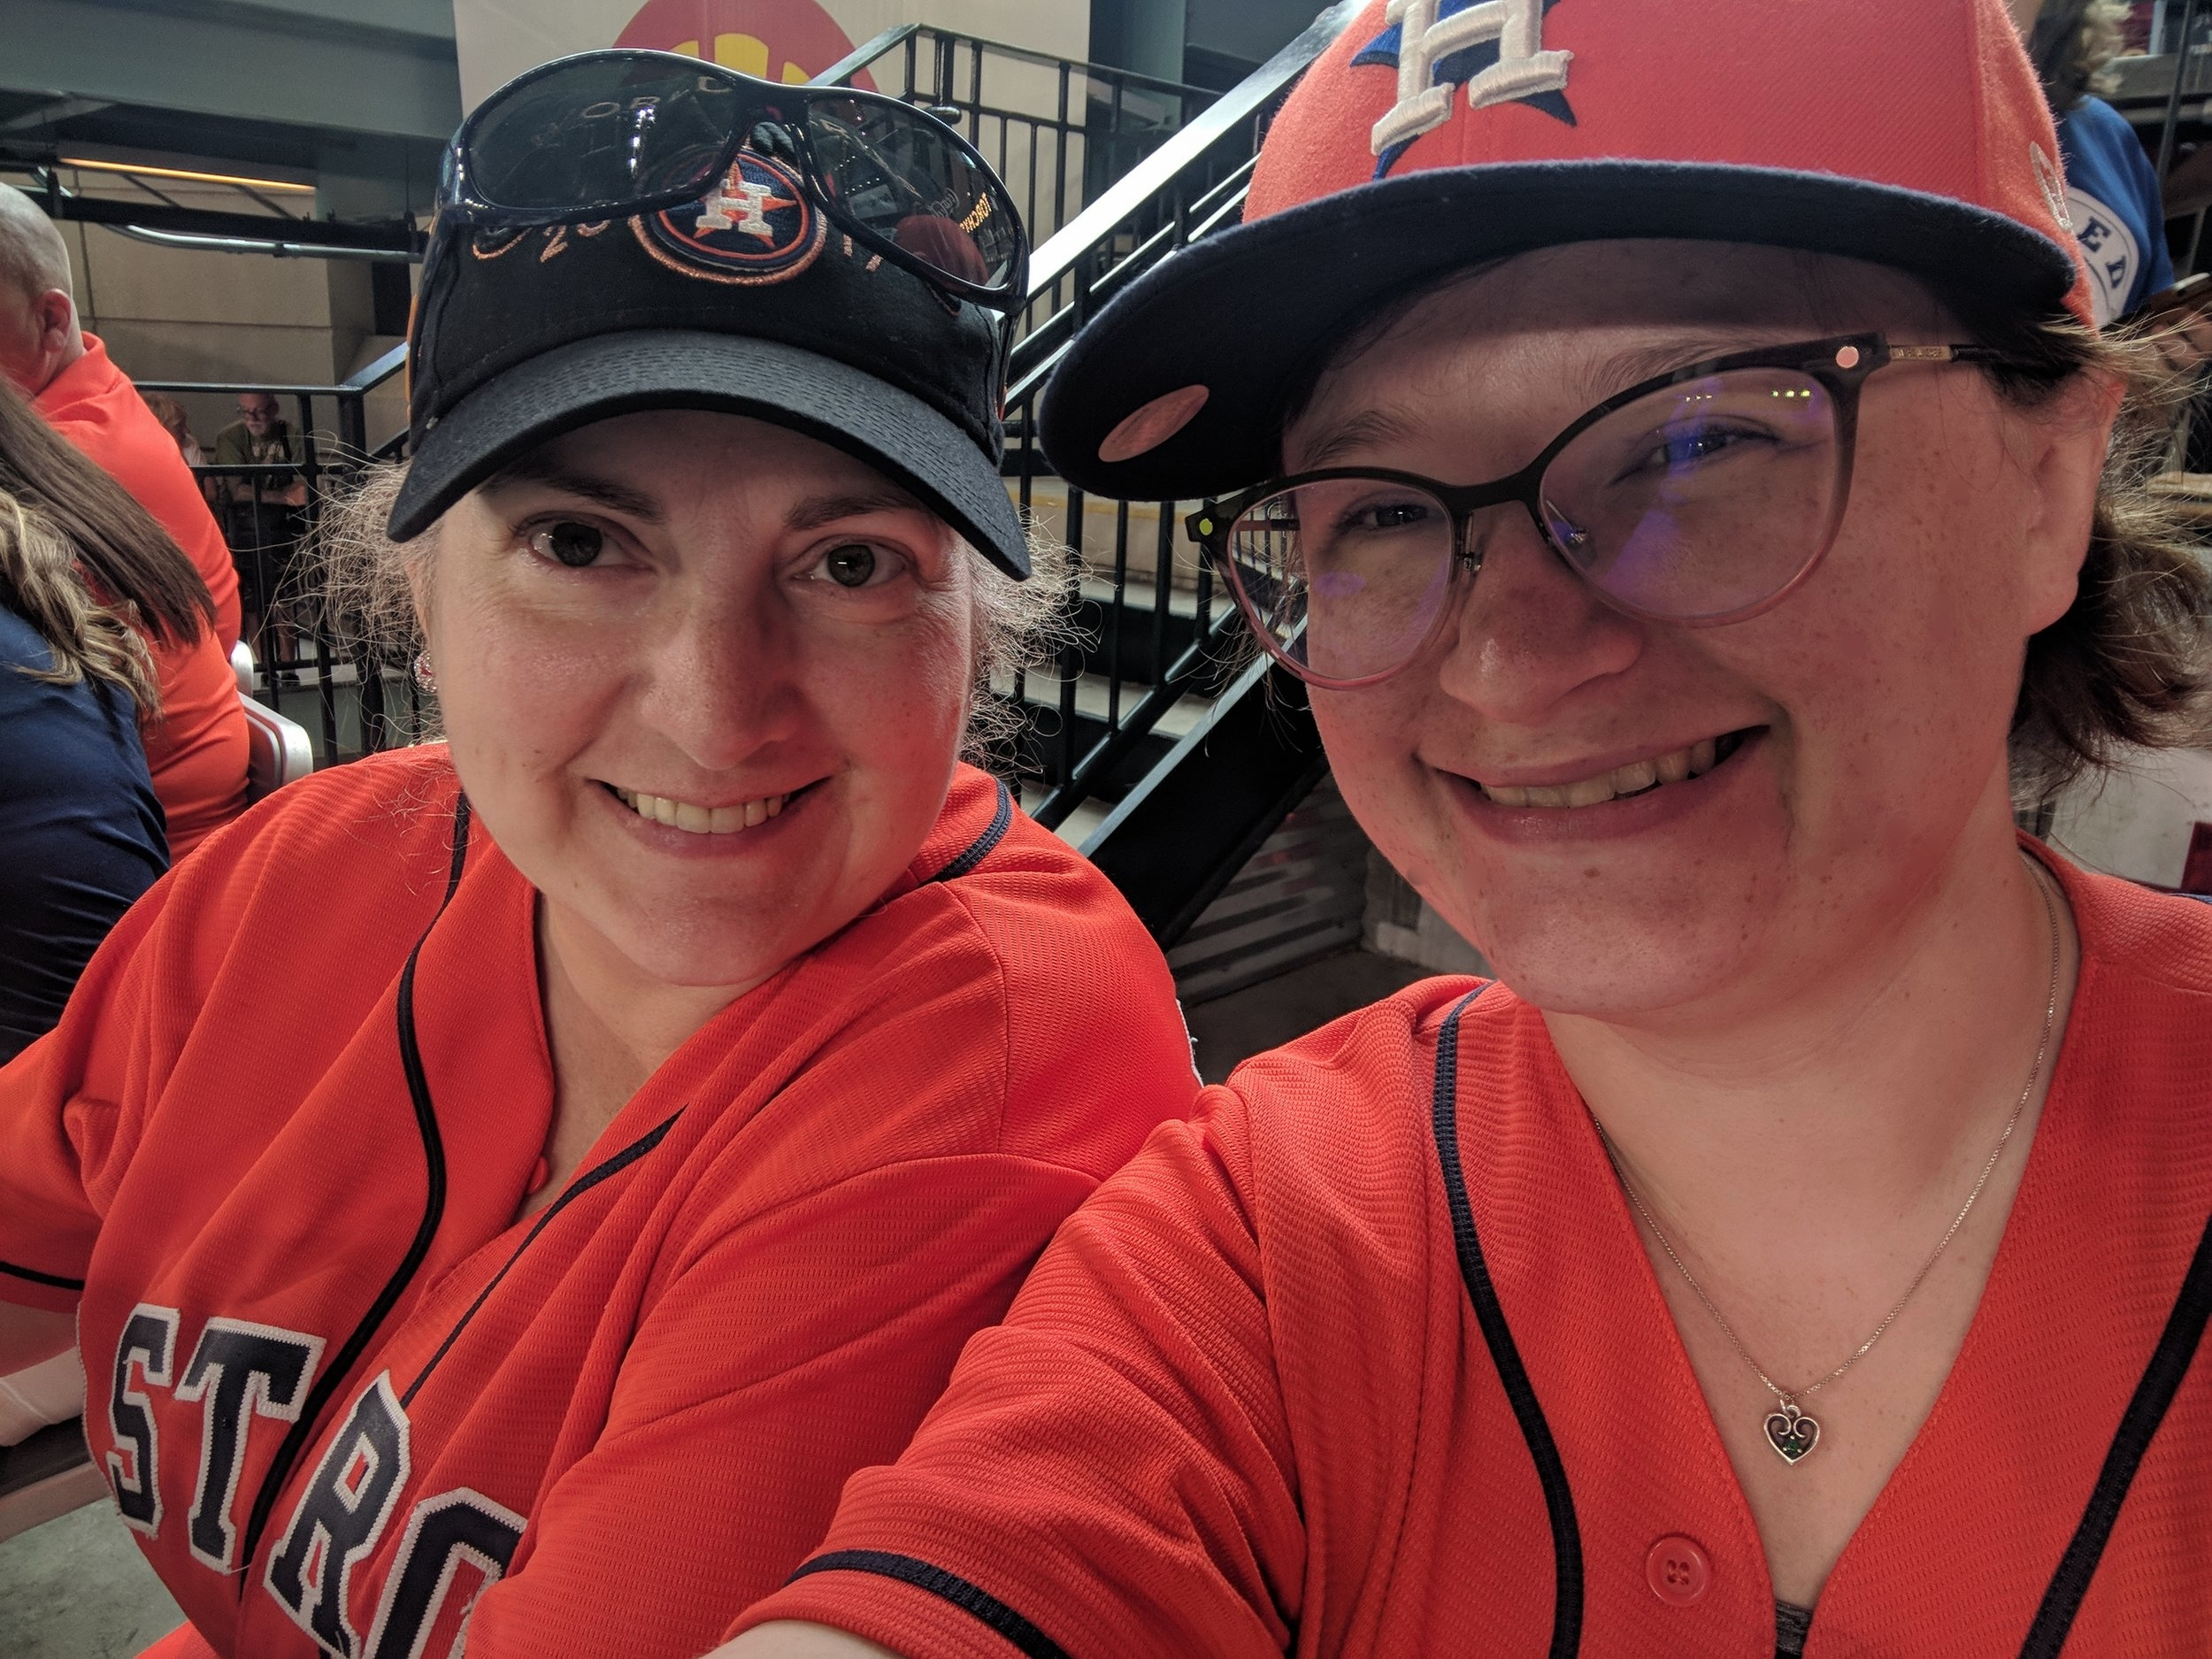 Melissa (left) and I (right) at an Astros game